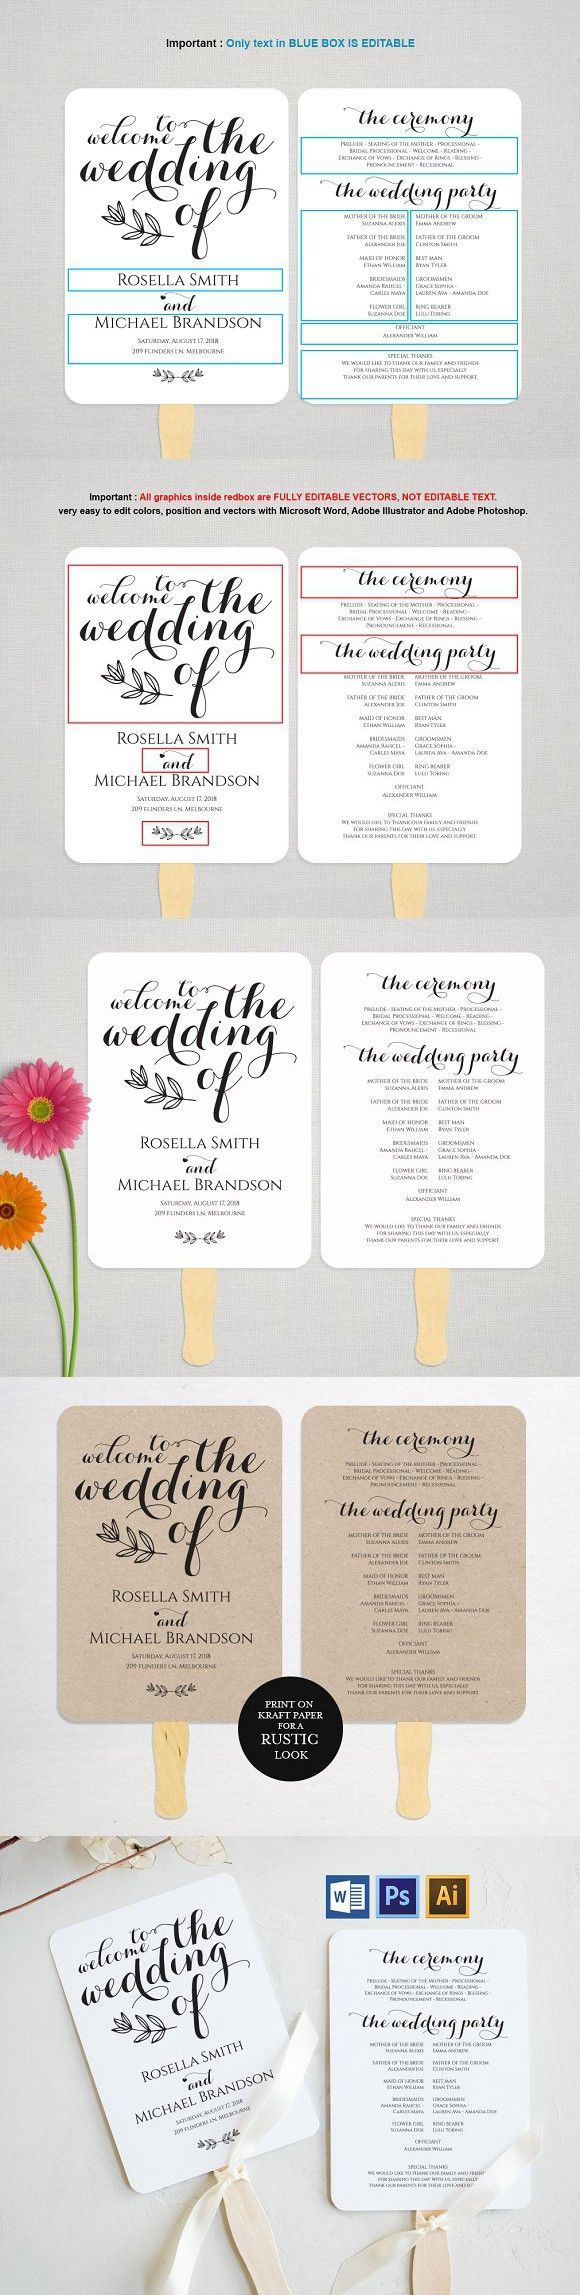 Wedding Program Fan MSW382 Invitation Templates Invitation